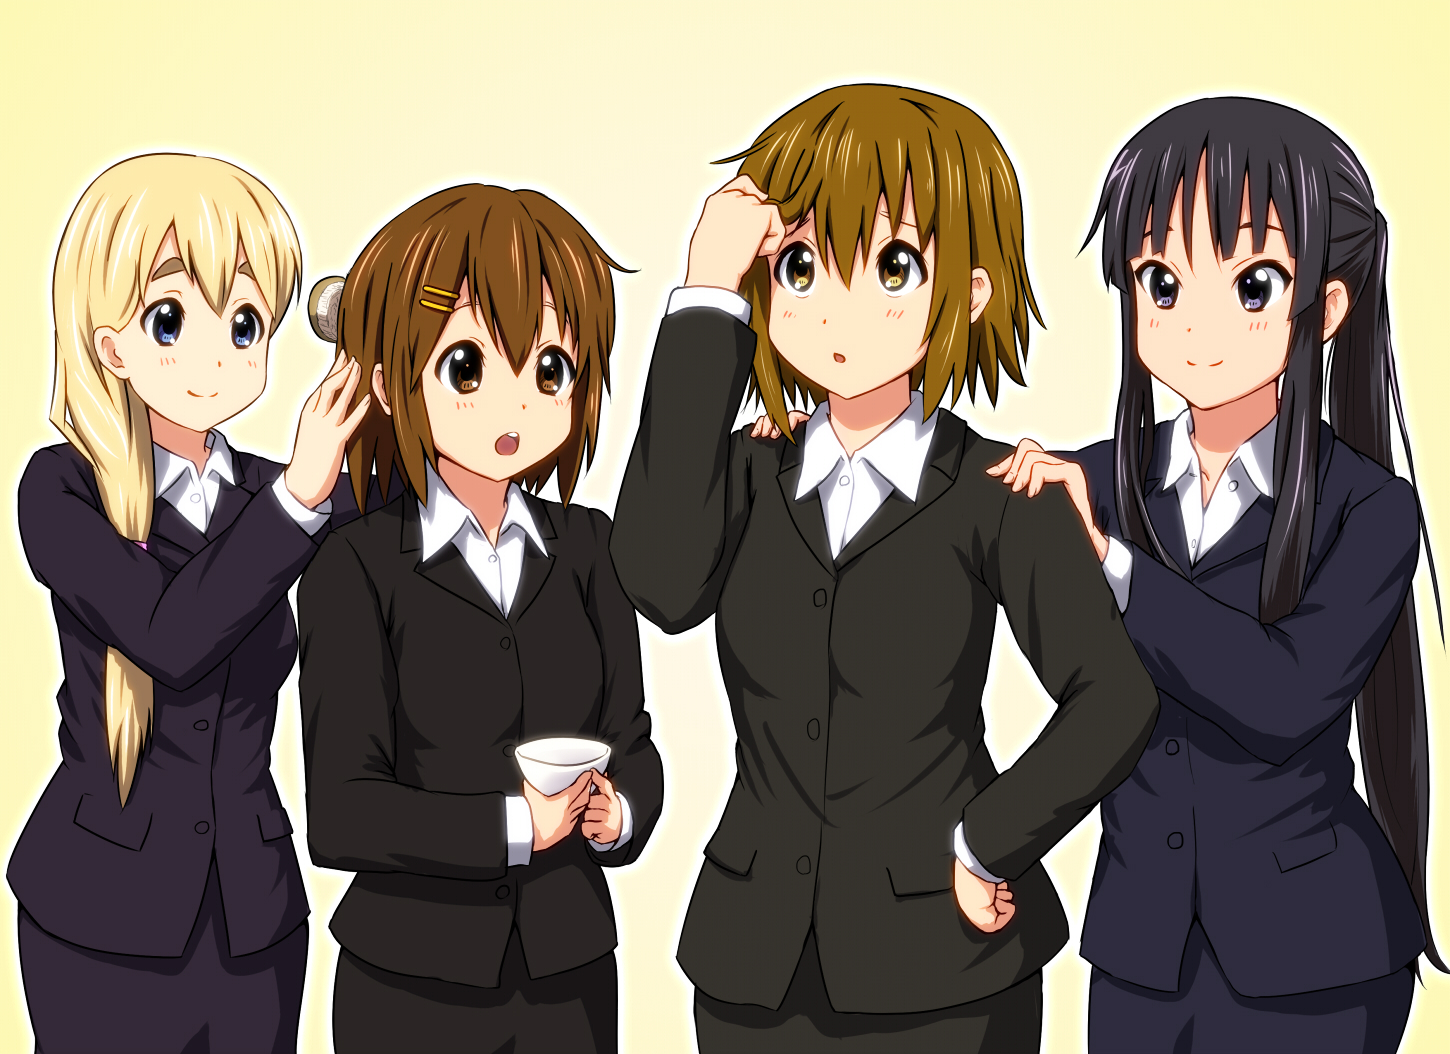 akiyama_mio black_hair blonde_hair blue_eyes brown_eyes brown_hair diesel-turbo drink hirasawa_yui k-on! kotobuki_tsumugi tainaka_ritsu